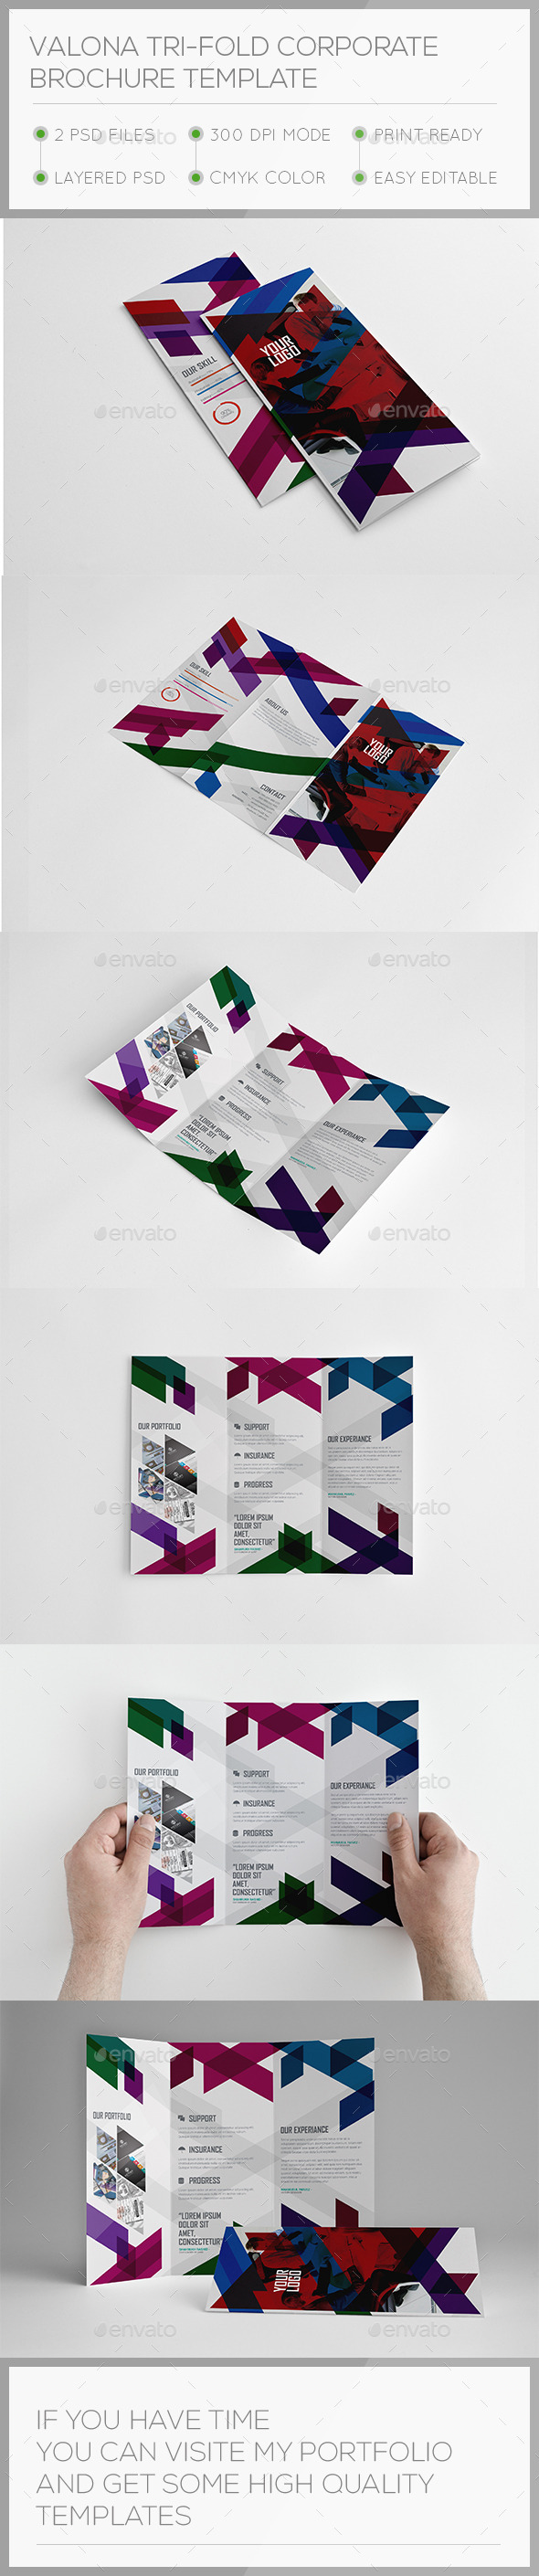 Valona Corporate Trifold Brochure Template - Brochures Print Templates